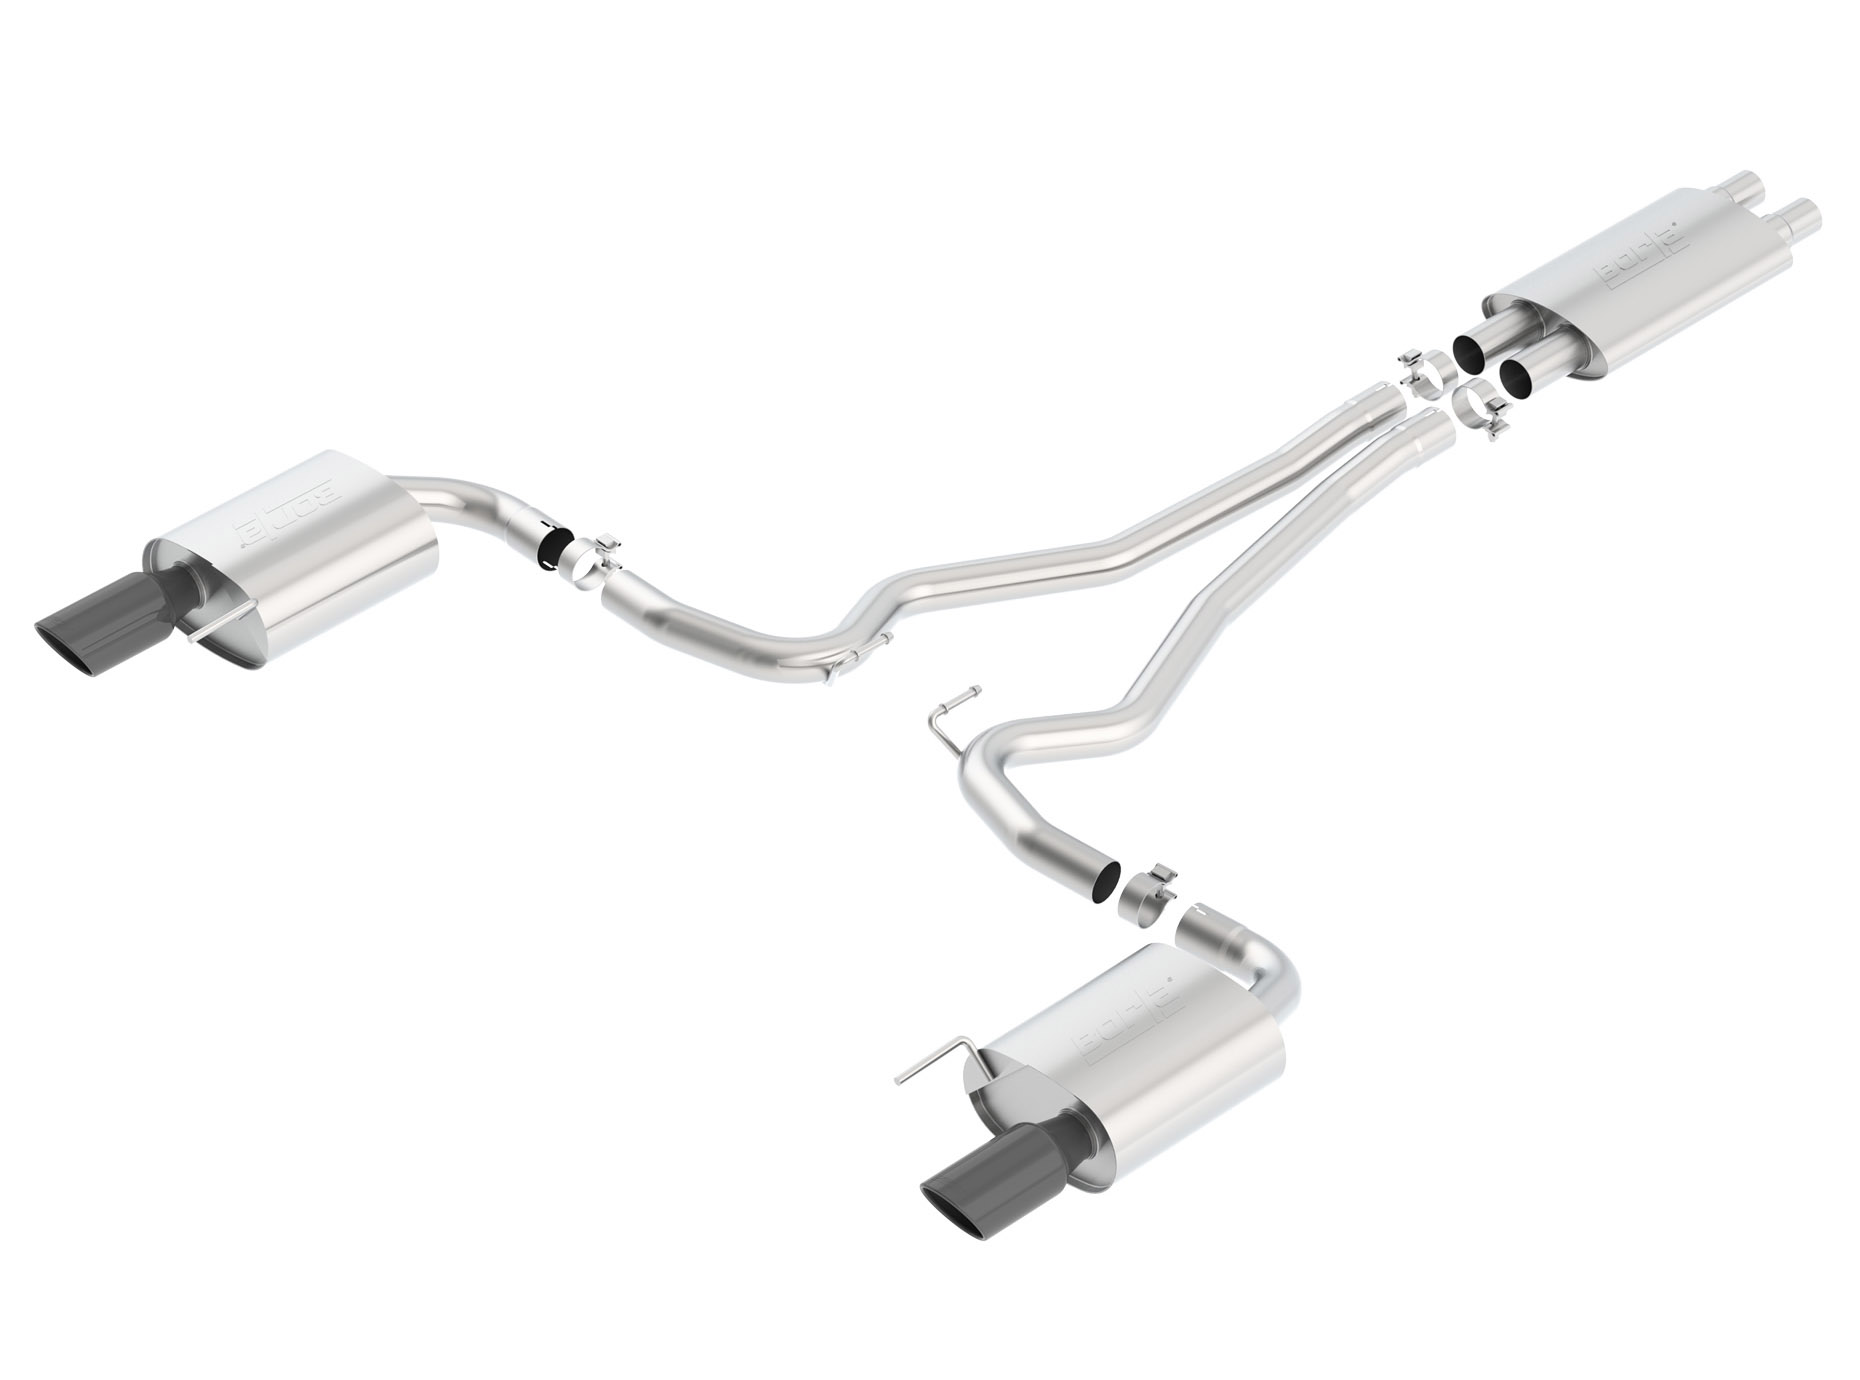 T-304 Stainless Catback Exhaust Mid X-Pipe for 2011-2014 Mustang S197 II 3.7 V6